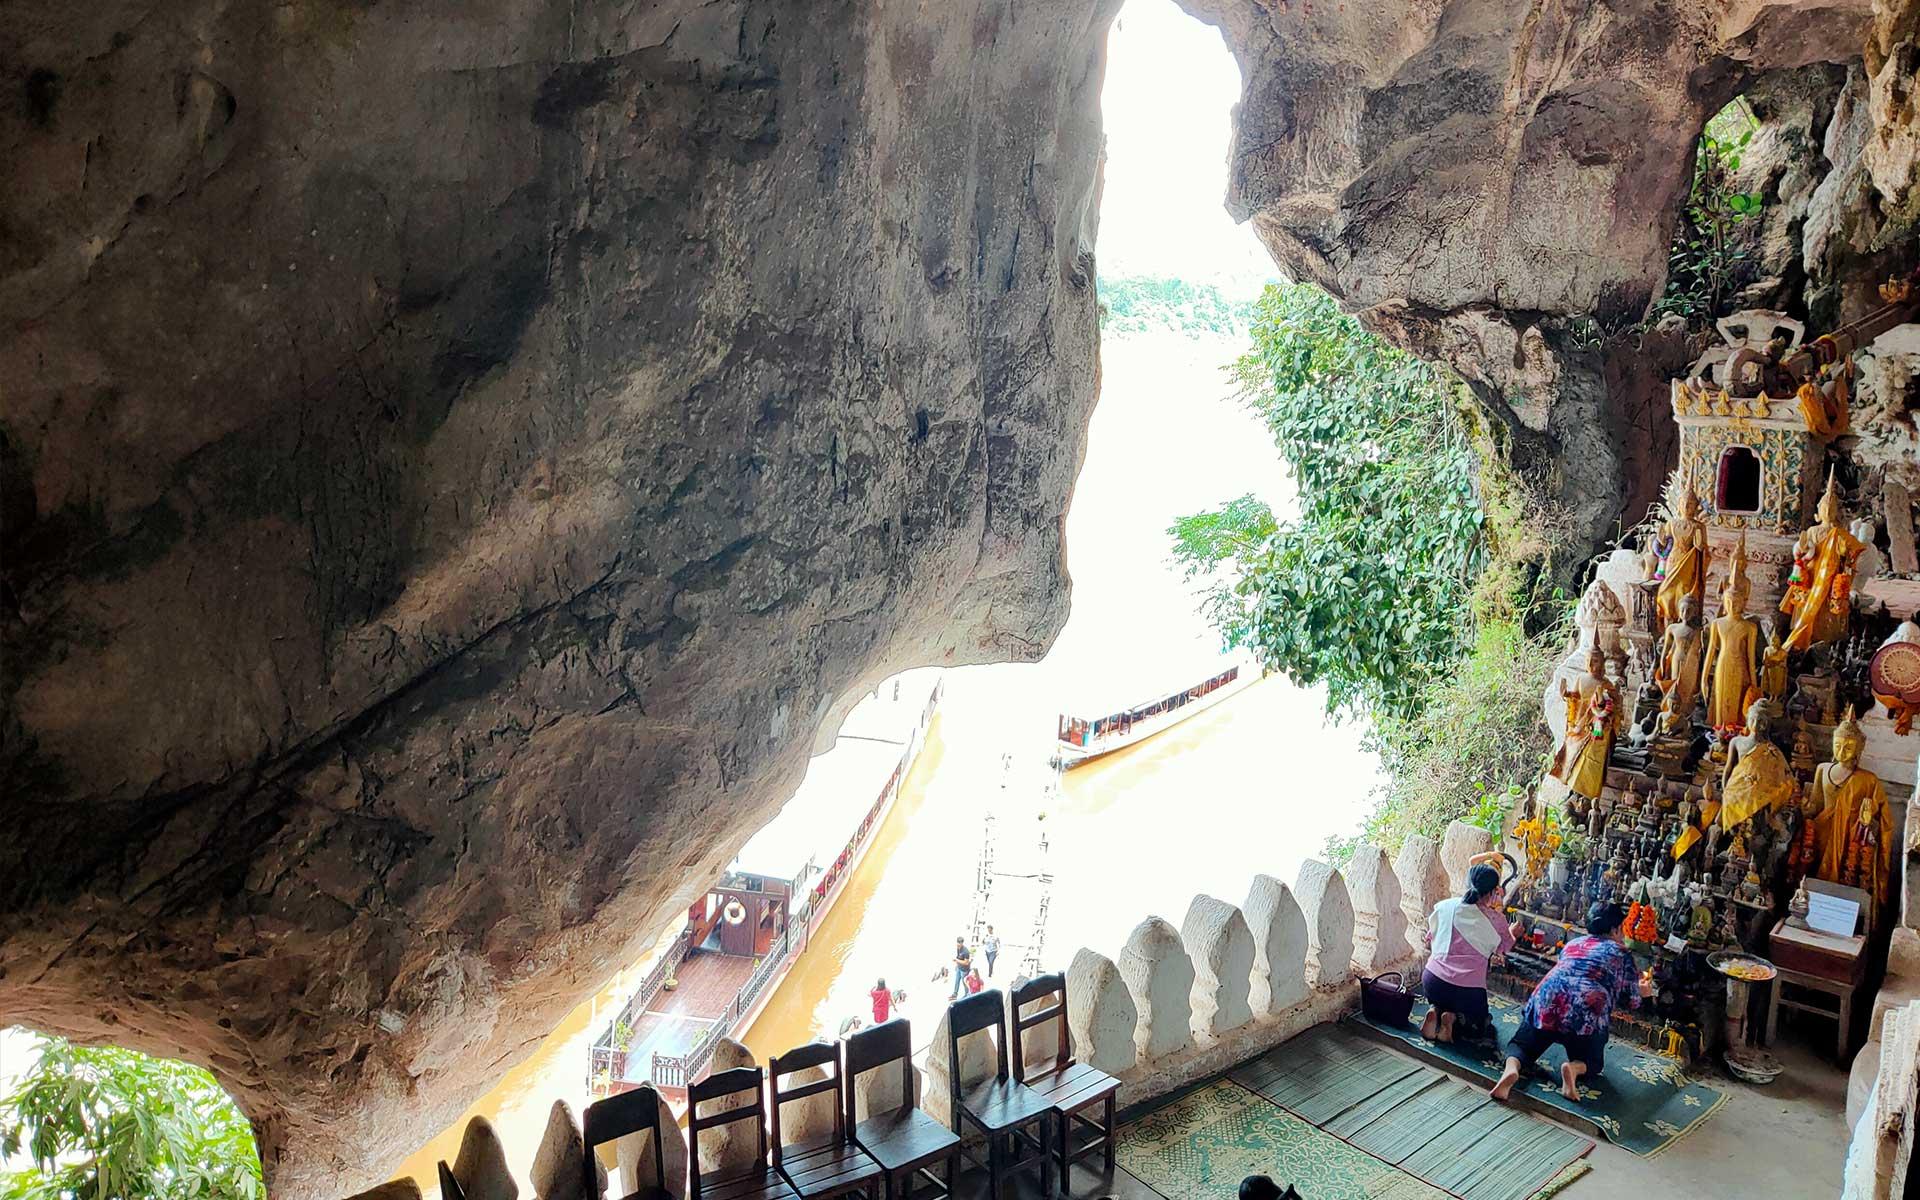 Located on Mekong River, Pak Ou Caves is very important site with over 4000 Buddha icons